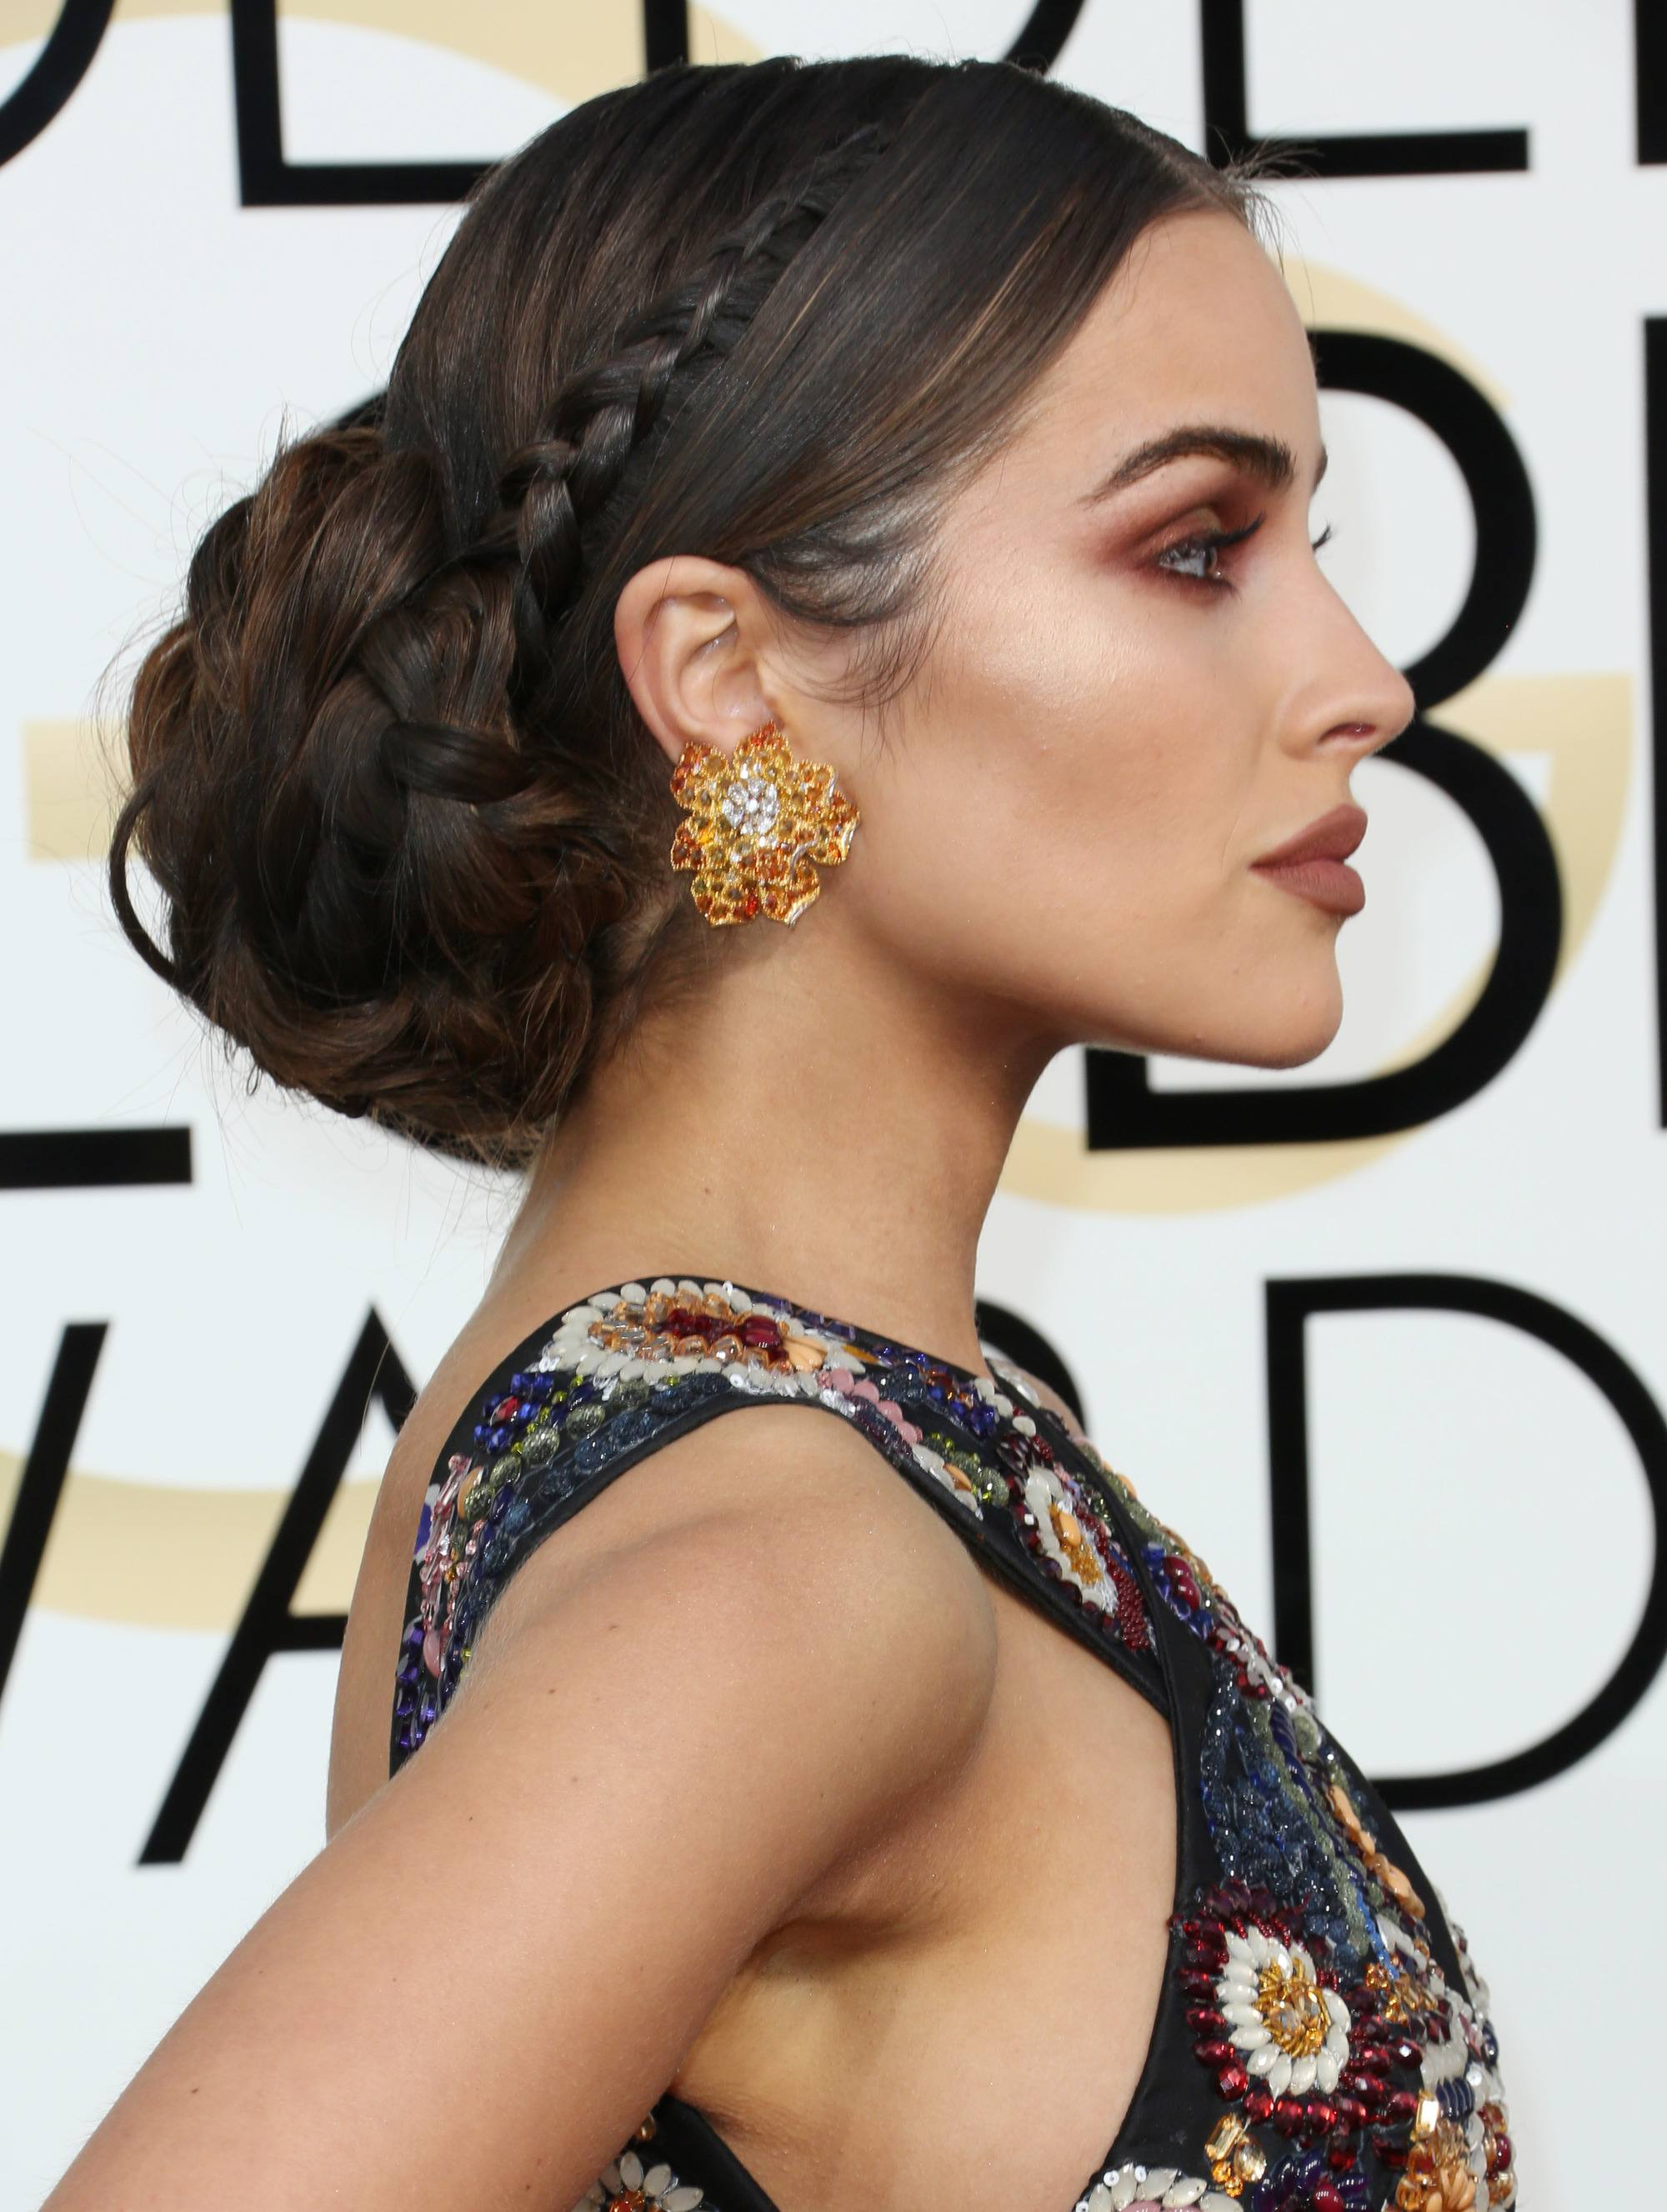 Greek hairstyles 8 looks thatll instantly make you feel like a goddess greek hairstyles side shot of oliviia culpo with braided low bun hairstyle solutioingenieria Gallery